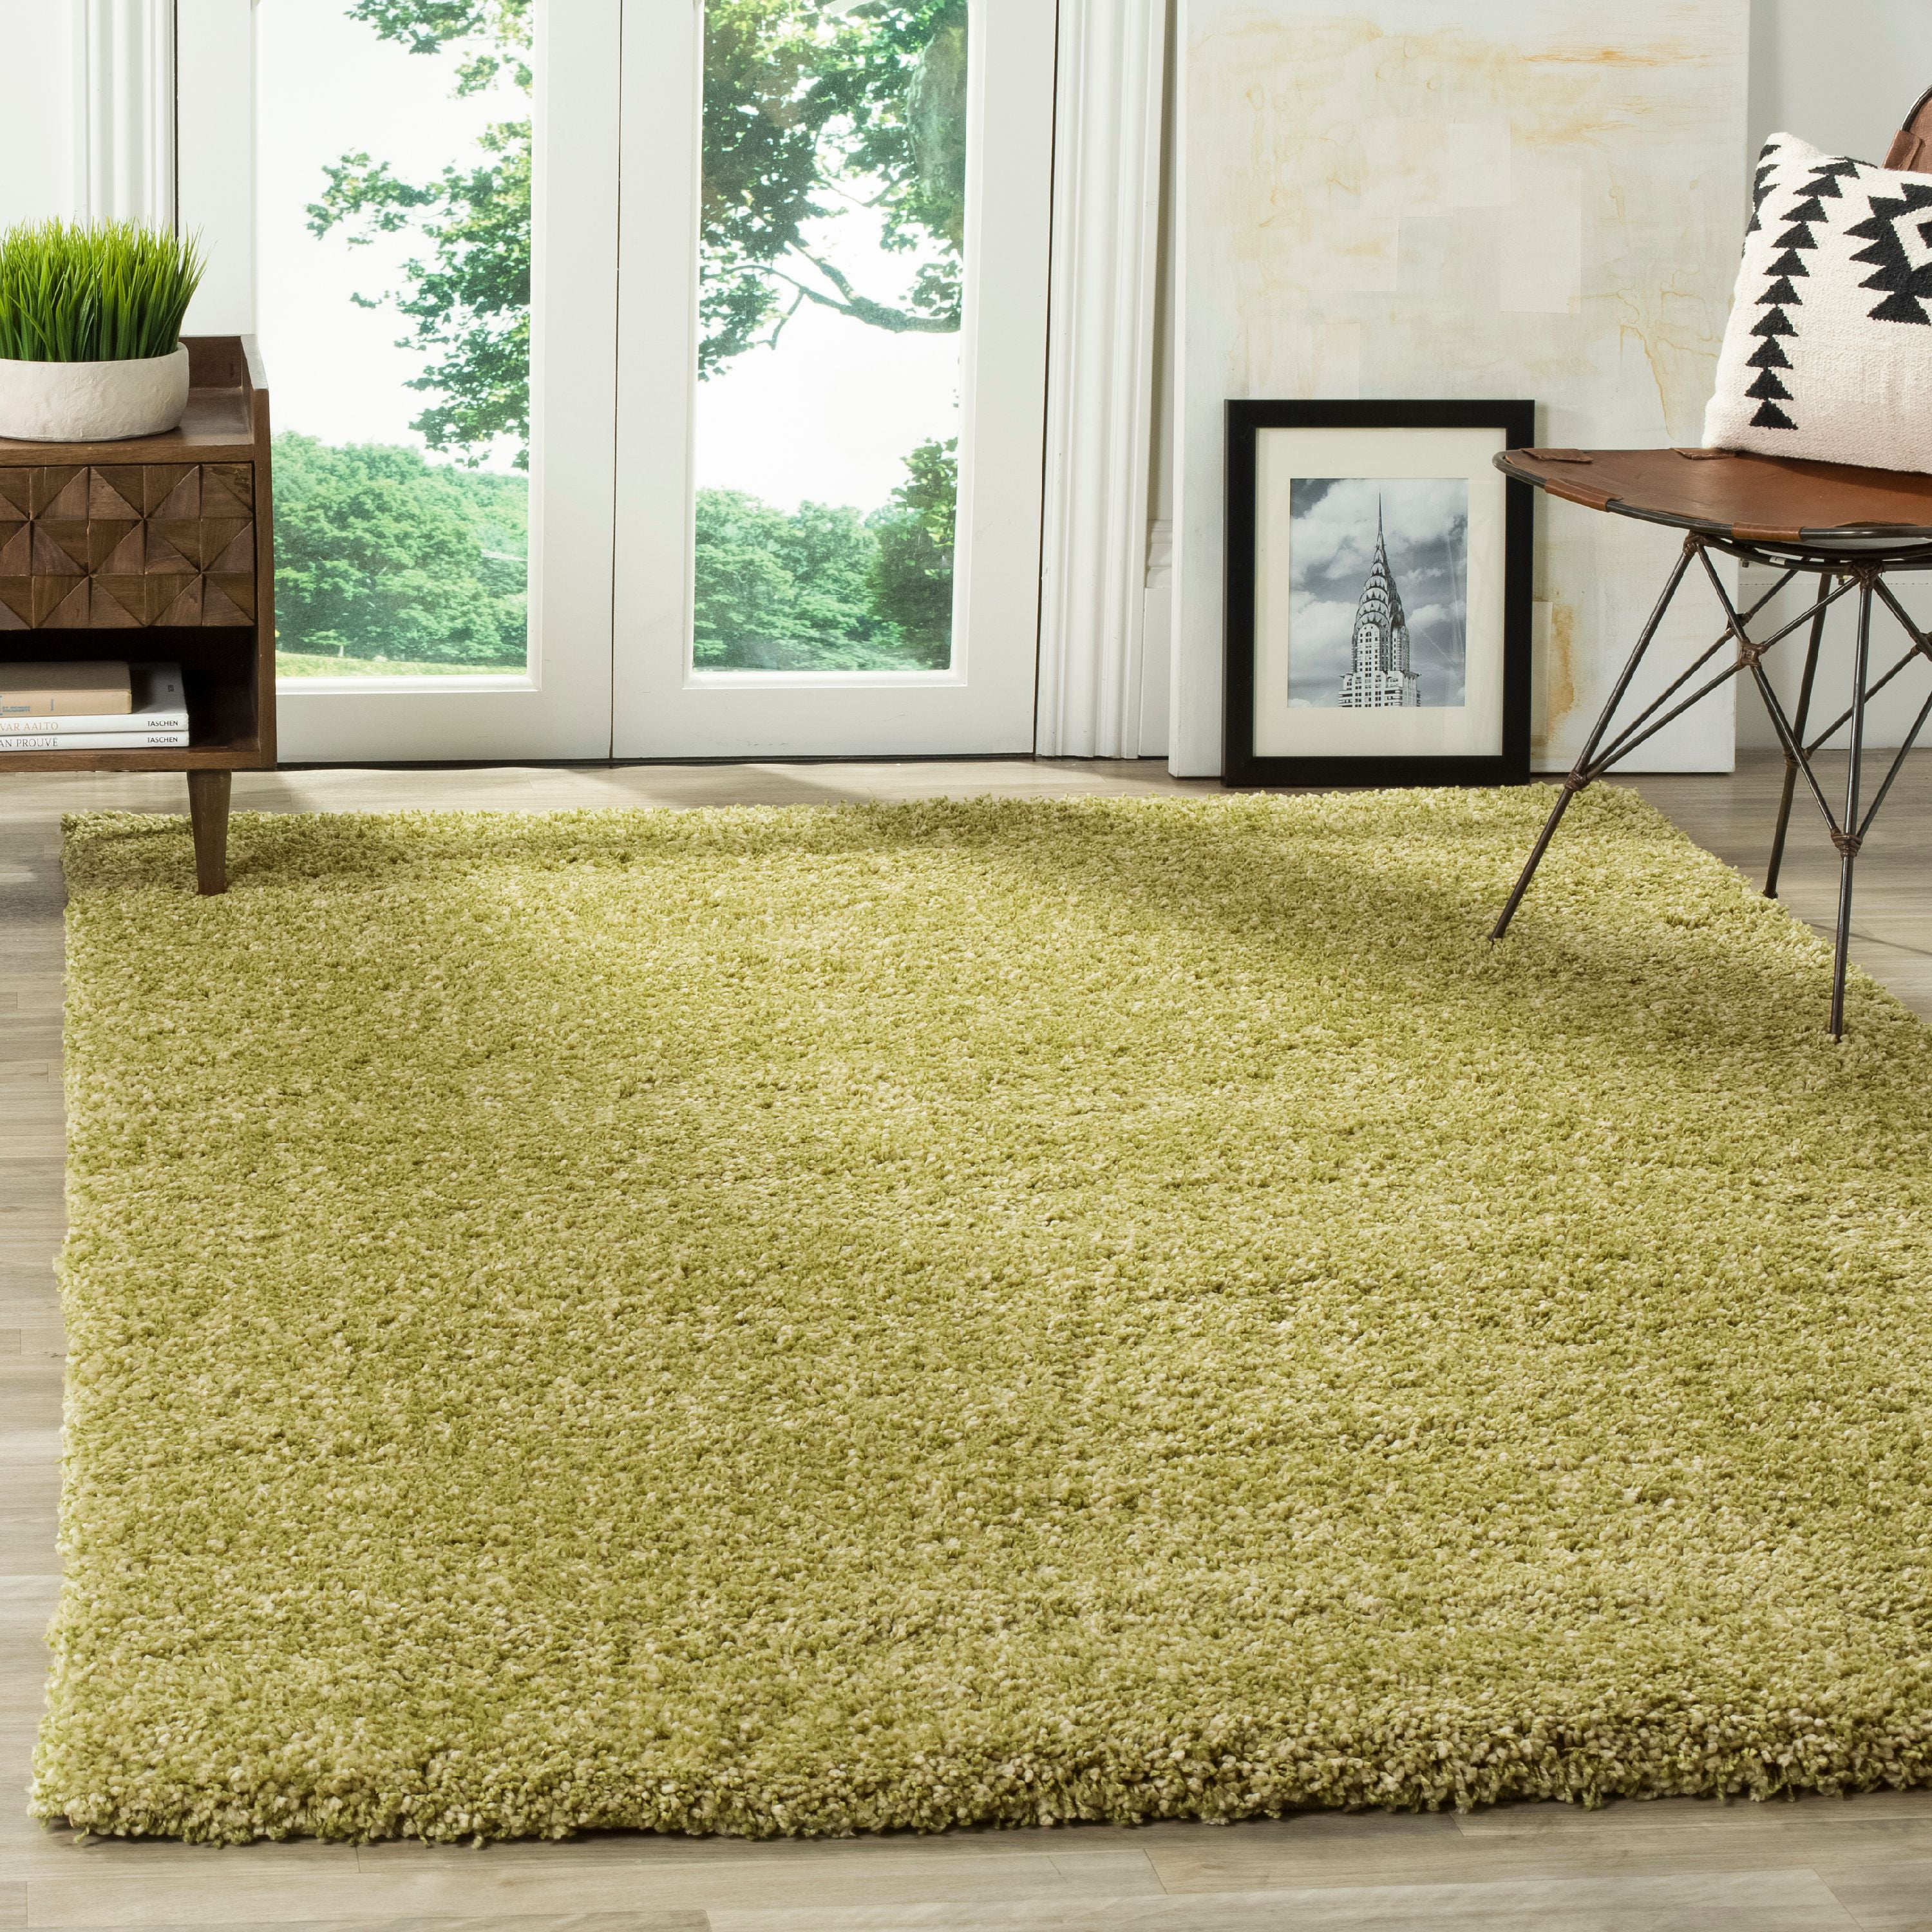 Safavieh California Solid Plush Shag Area Rug or Runner by Safavieh